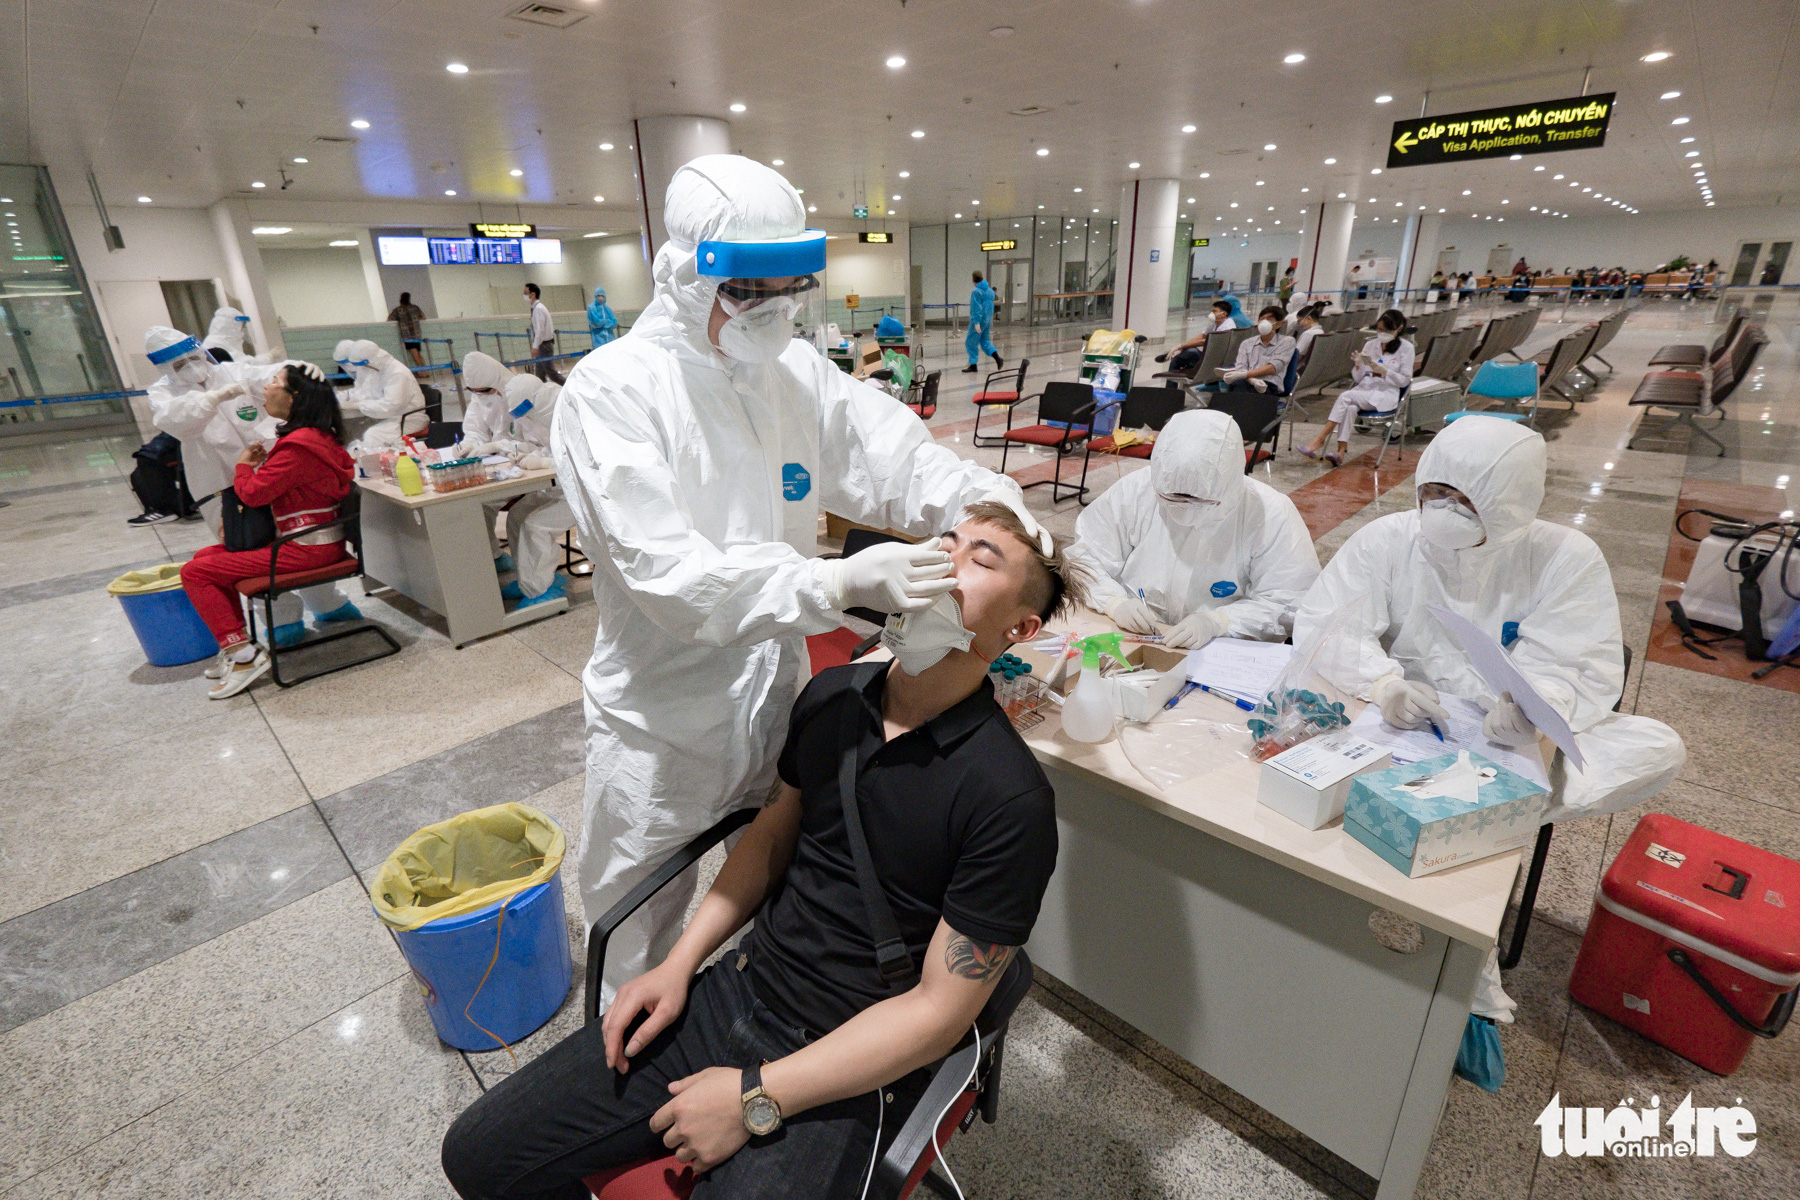 A health worker samples a man for novel coronavirus disease (COVID-19) testing at Noi Bai International Airport in Hanoi, Vietnam, March 18, 2020. Photo: Nam Tran / Tuoi Tre